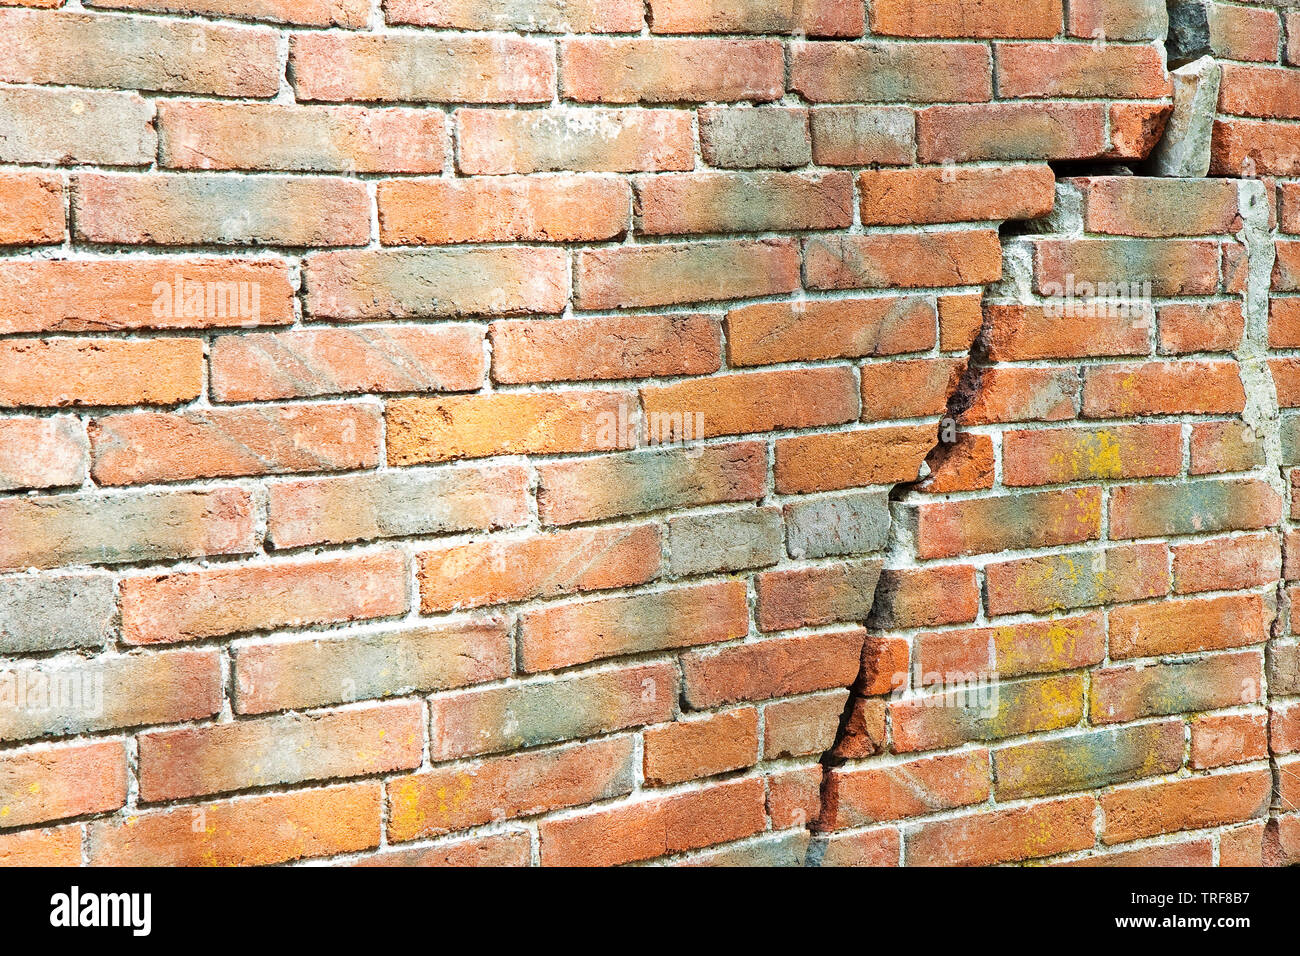 Old cracked brick wall - wall built in the 16th century - Stock Image